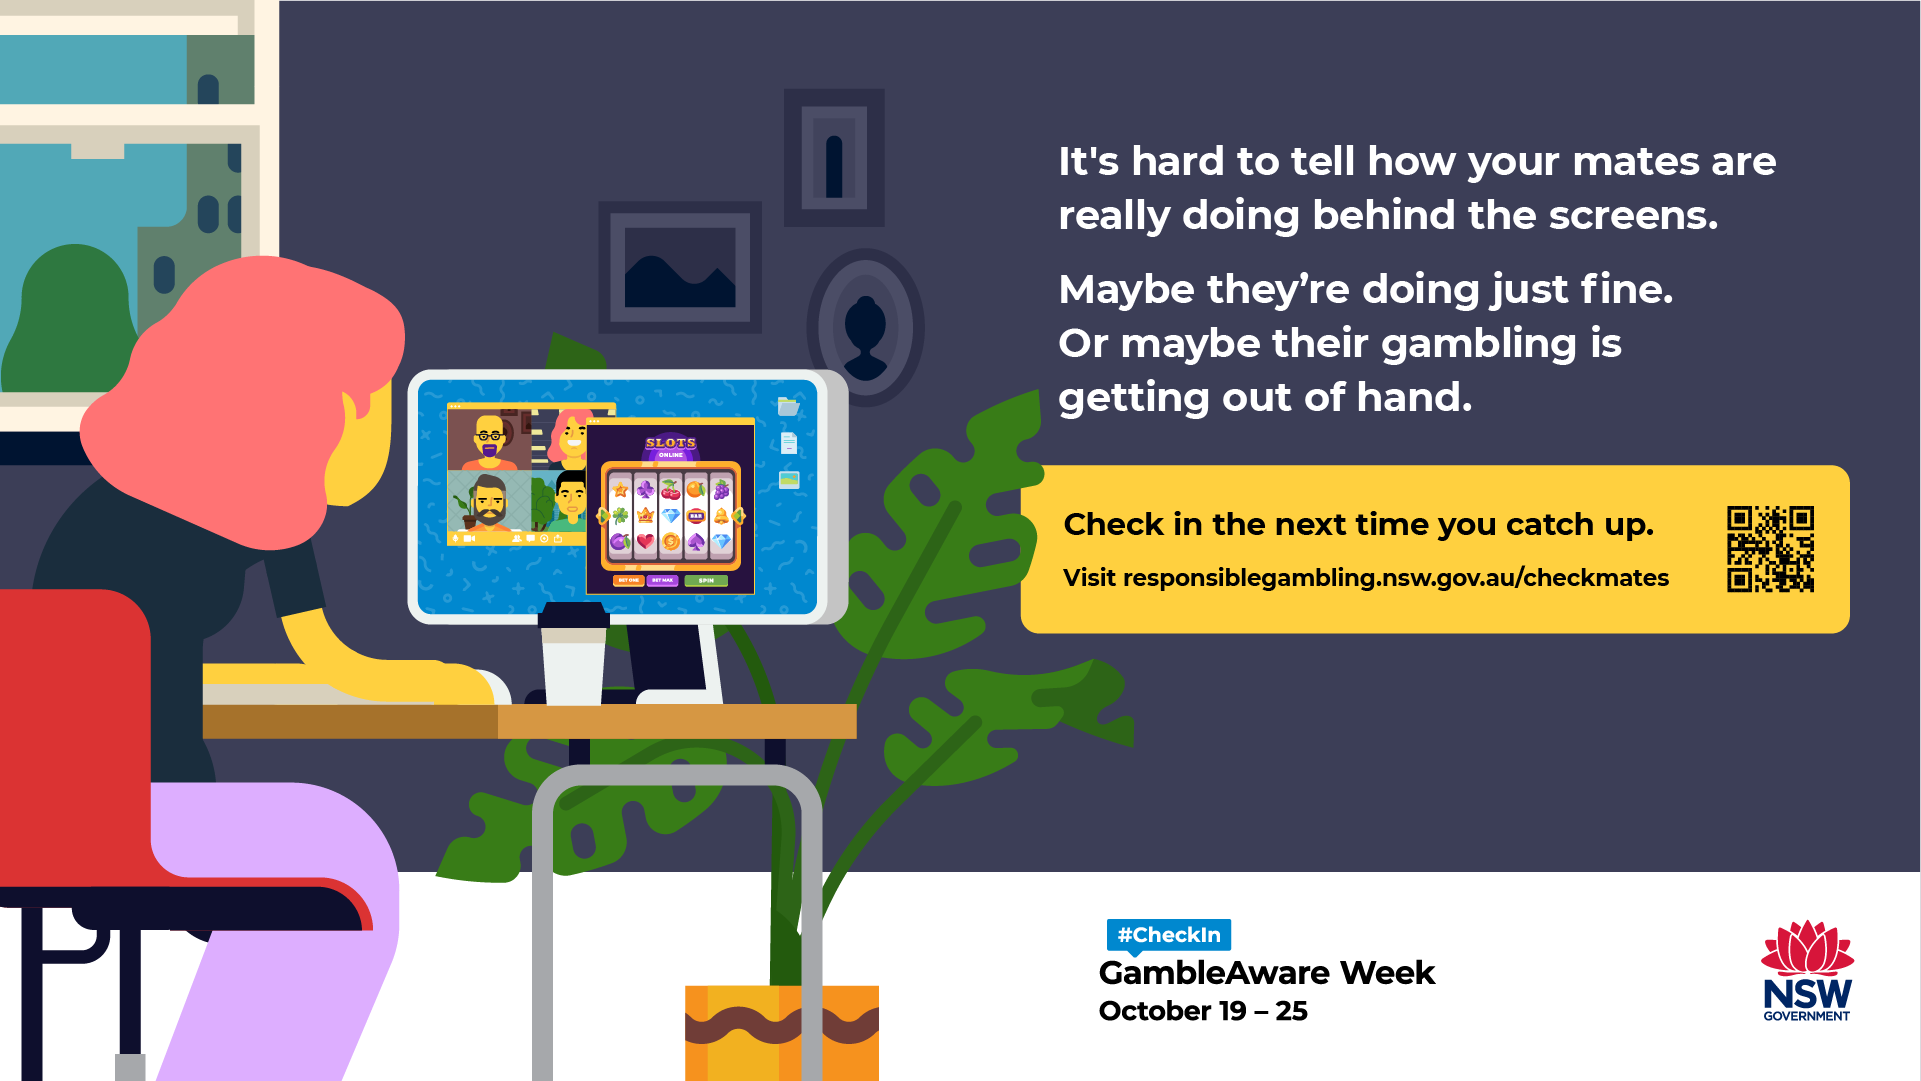 Check in next time you catch up. GambleAware Week 2020